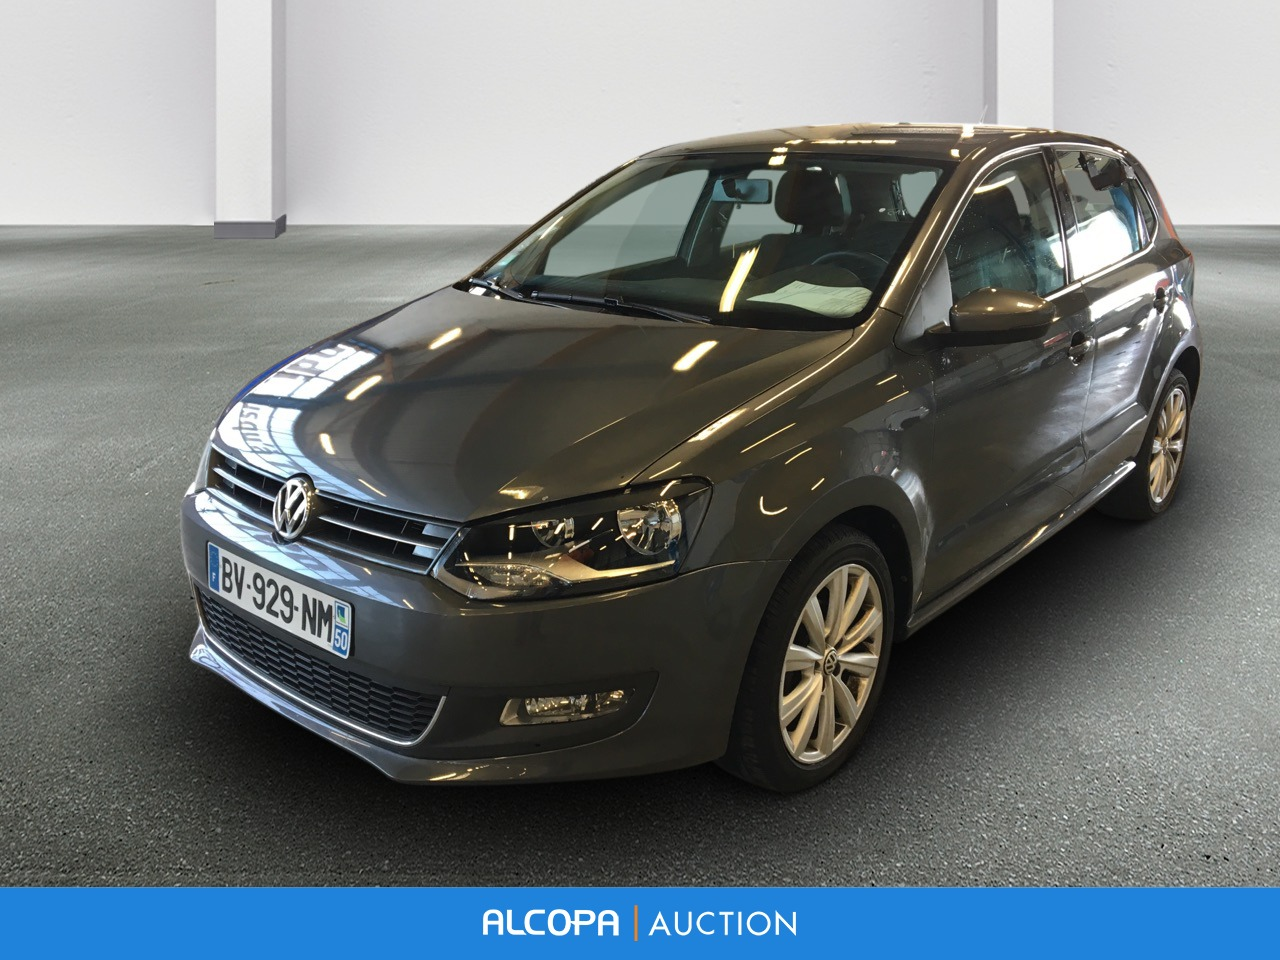 volkswagen polo polo 1 6 tdi 90 cr fap bluemotion technology confortline alcopa auction. Black Bedroom Furniture Sets. Home Design Ideas